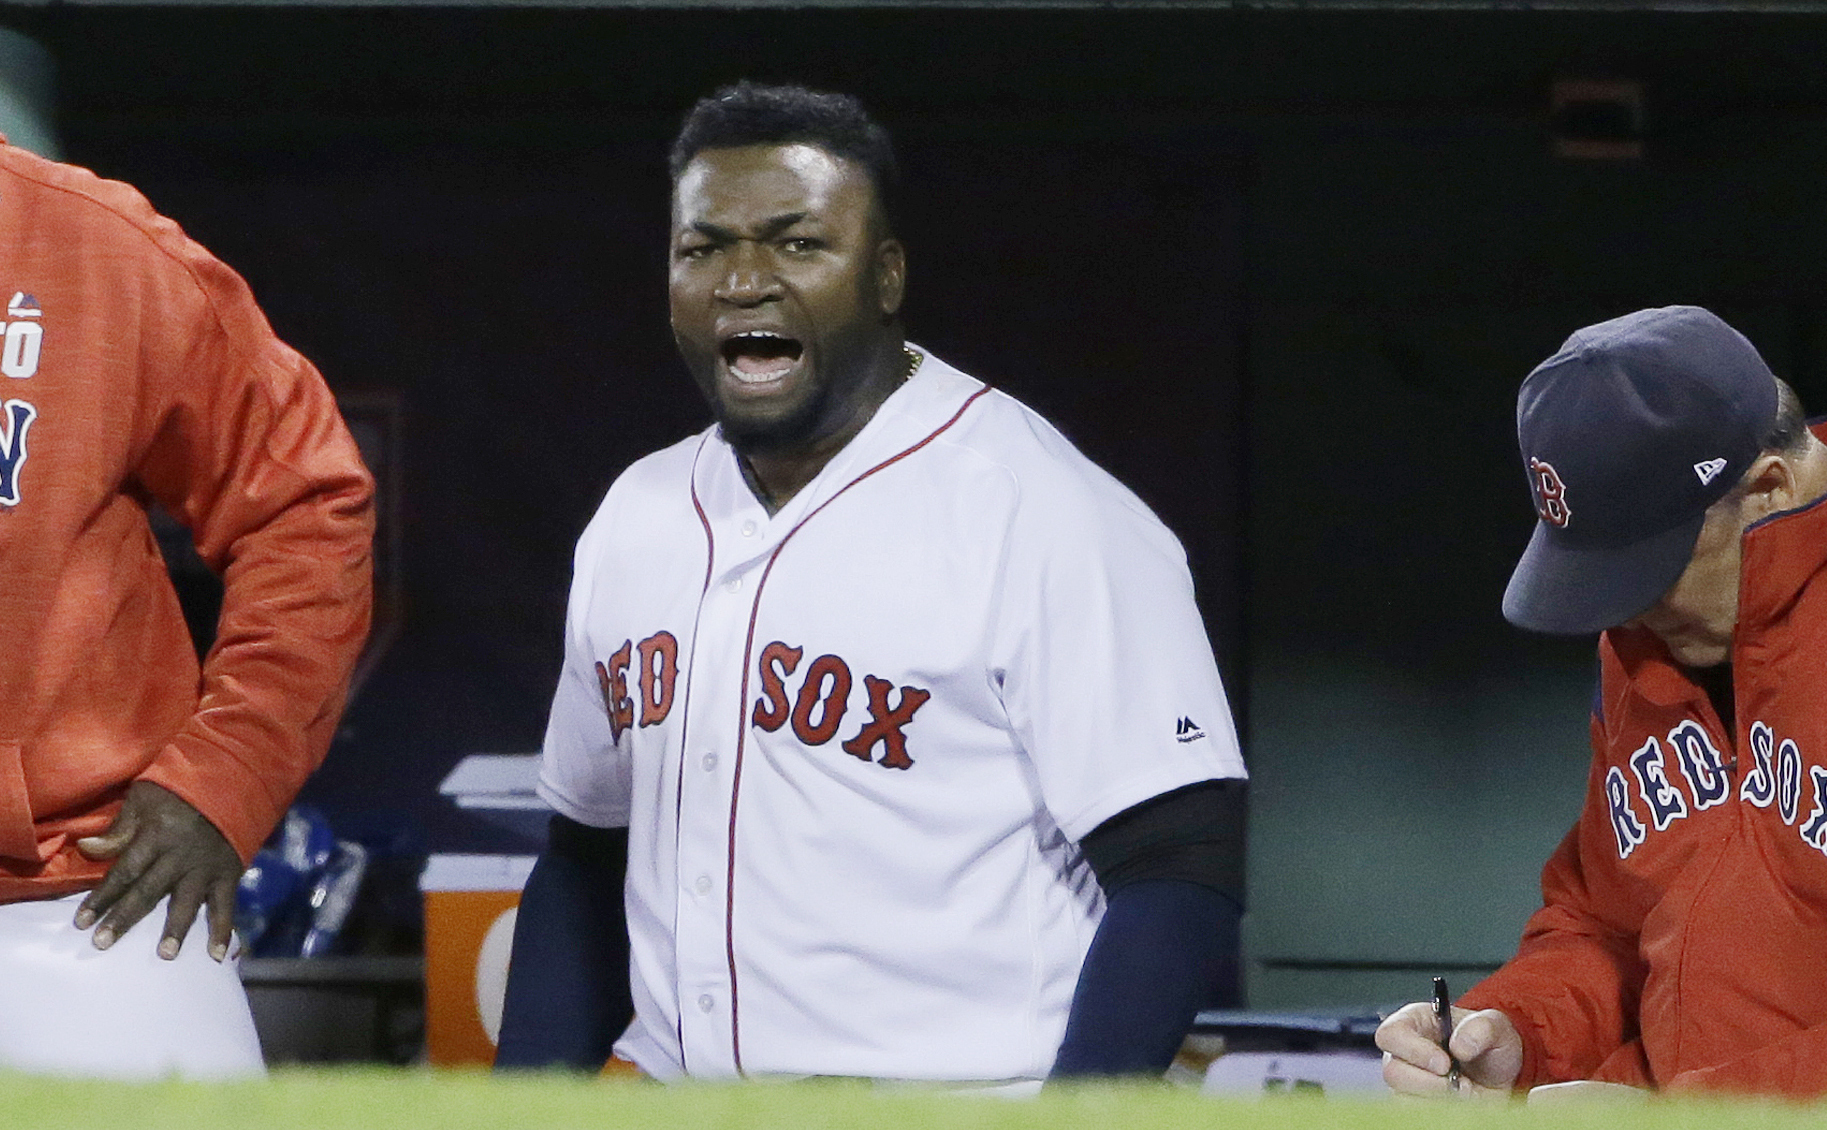 David Ortiz Shot Baseball_1560135781113